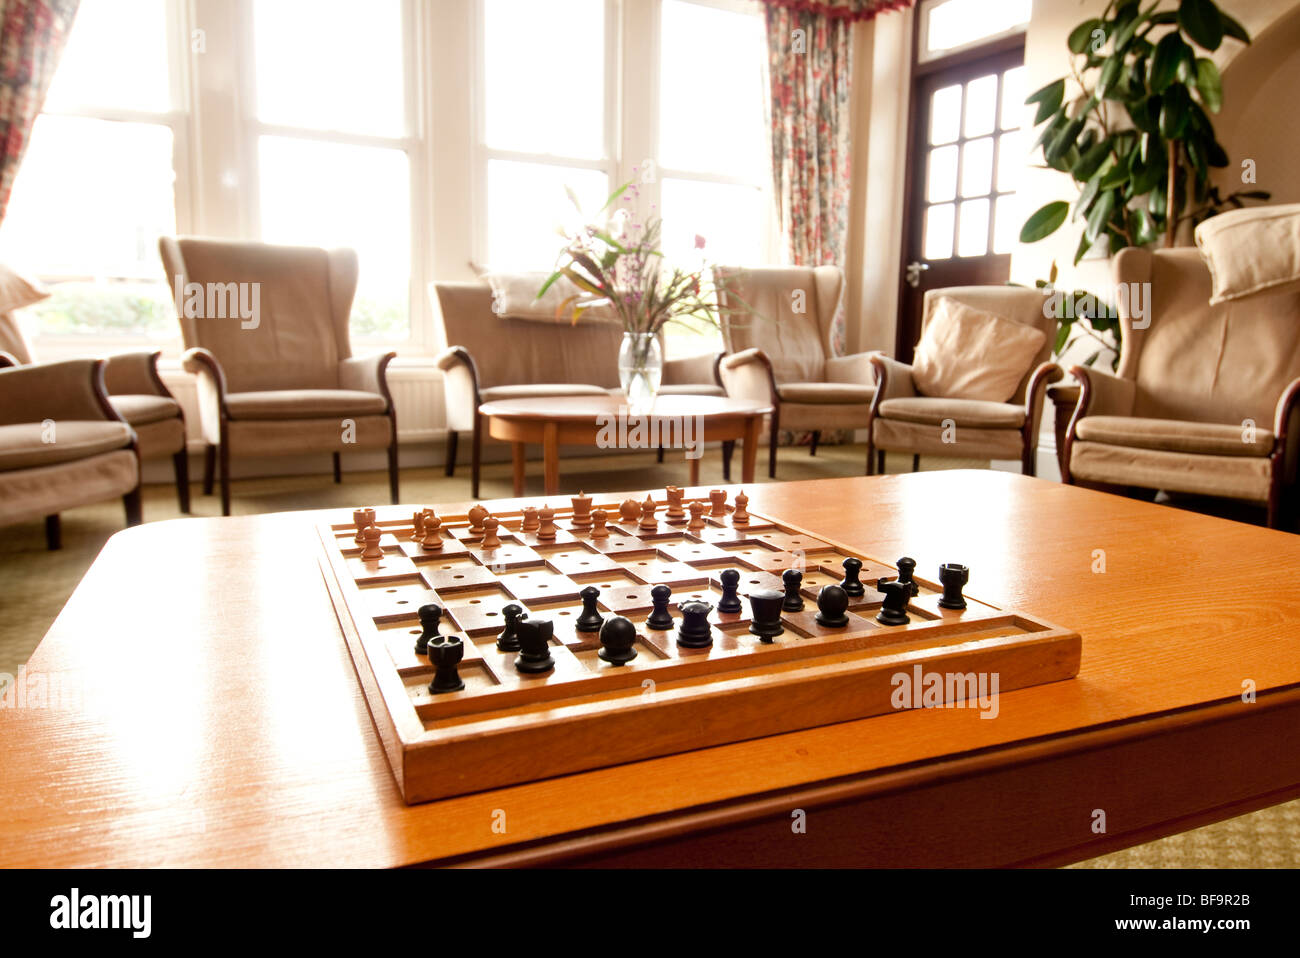 chess set on a table in living room & chess set on a table in living room Stock Photo: 26645875 - Alamy